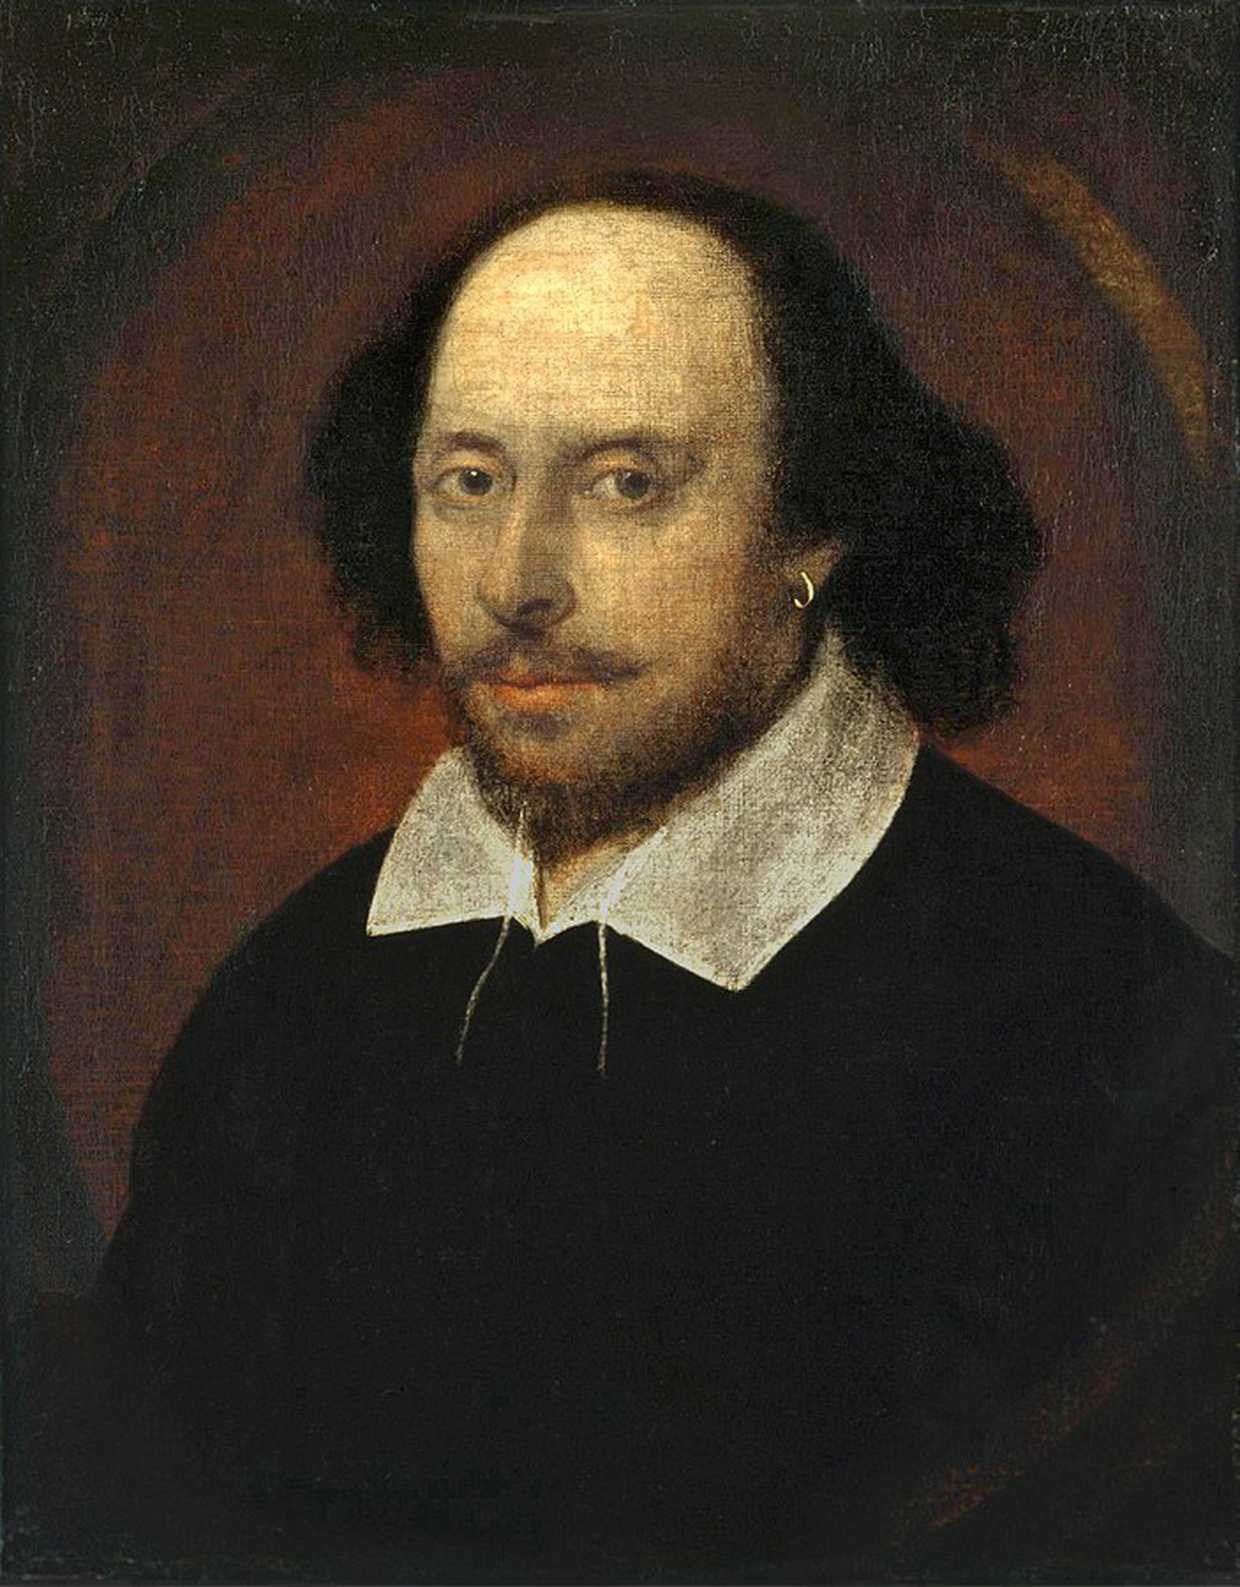 703px shakespeare.jpg 1240x0 q50 subsampling 2 upscale